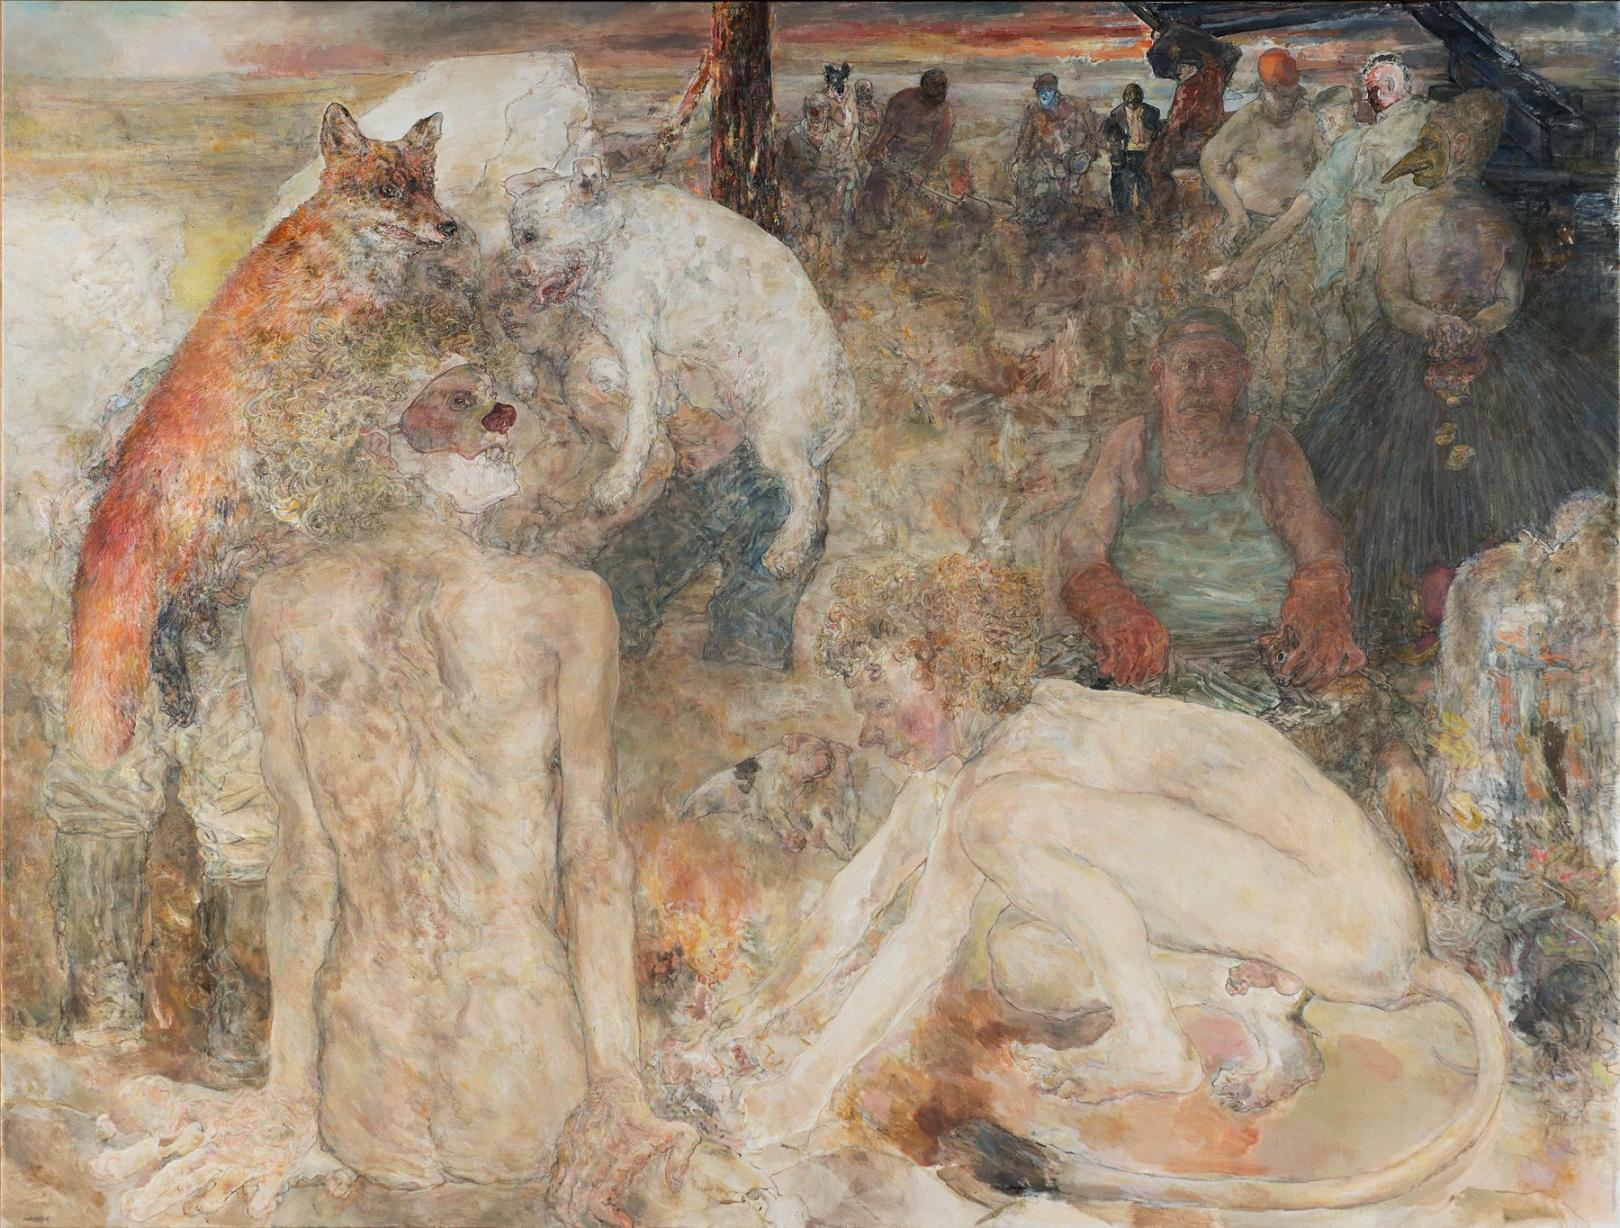 Marion Wagschall: The Melancholy of Carnivores (2014). Acrylic on canvas, 90 x 43 inches.